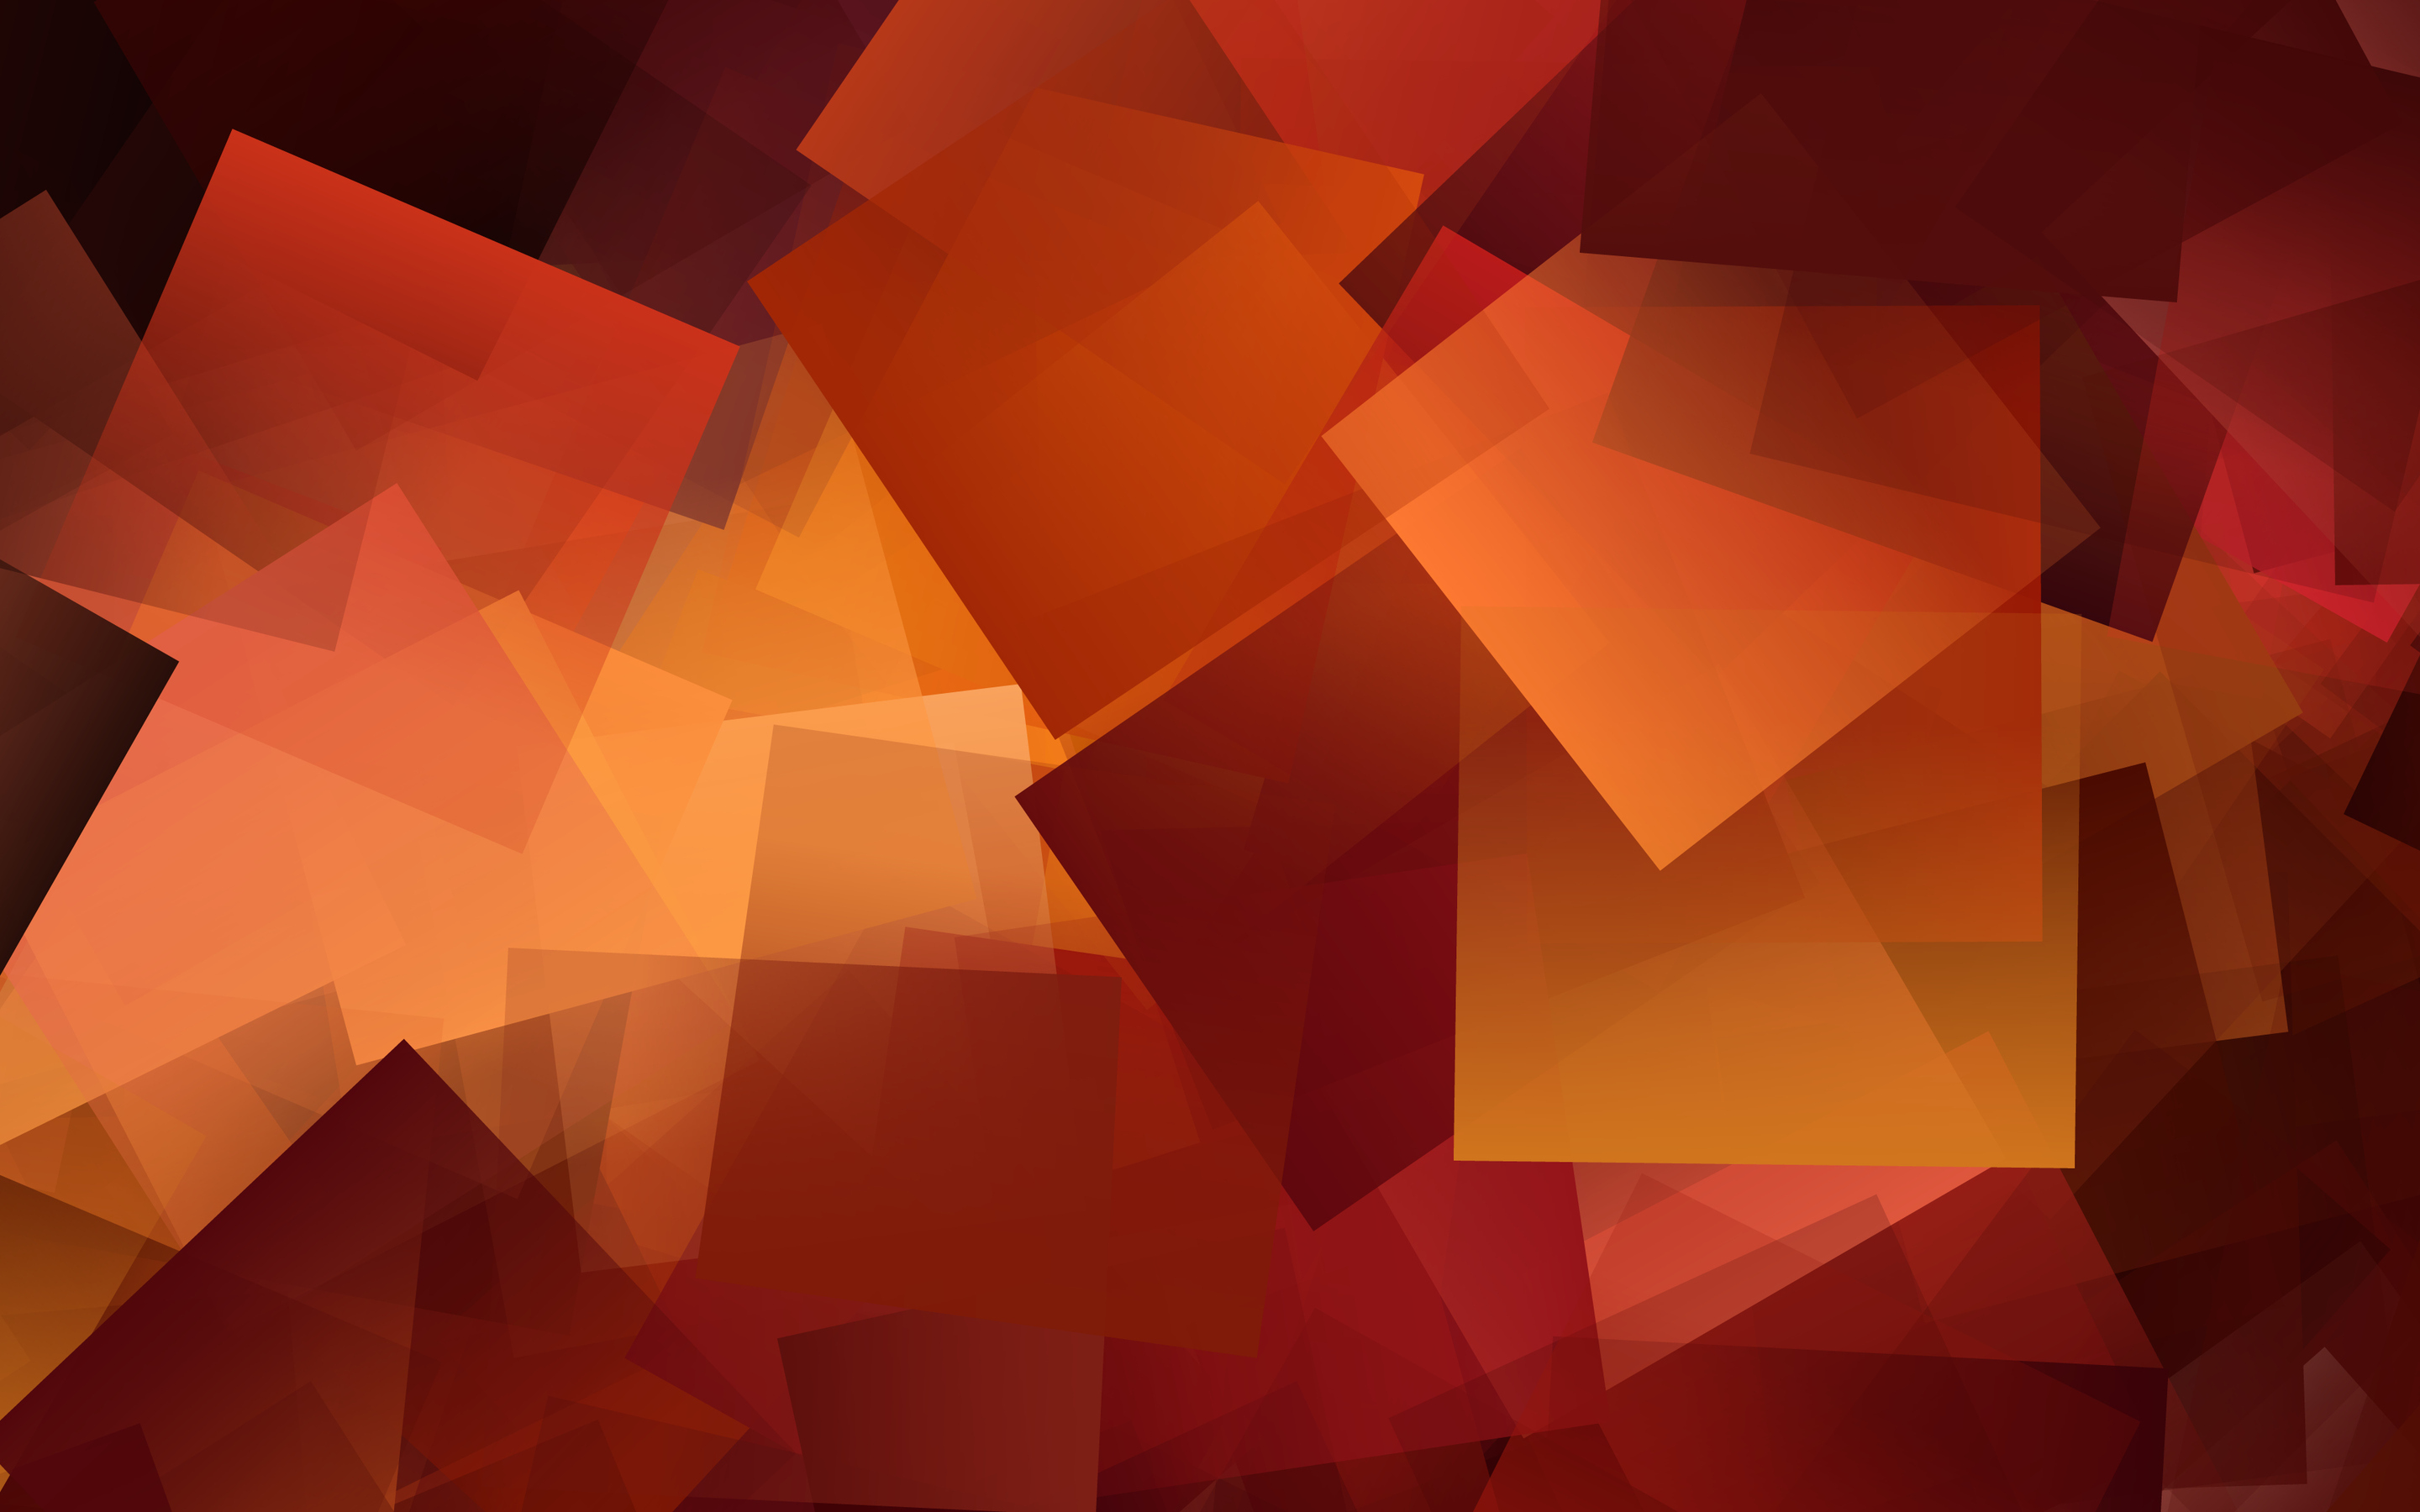 geometry-shapes-abstract-4k-19.jpg